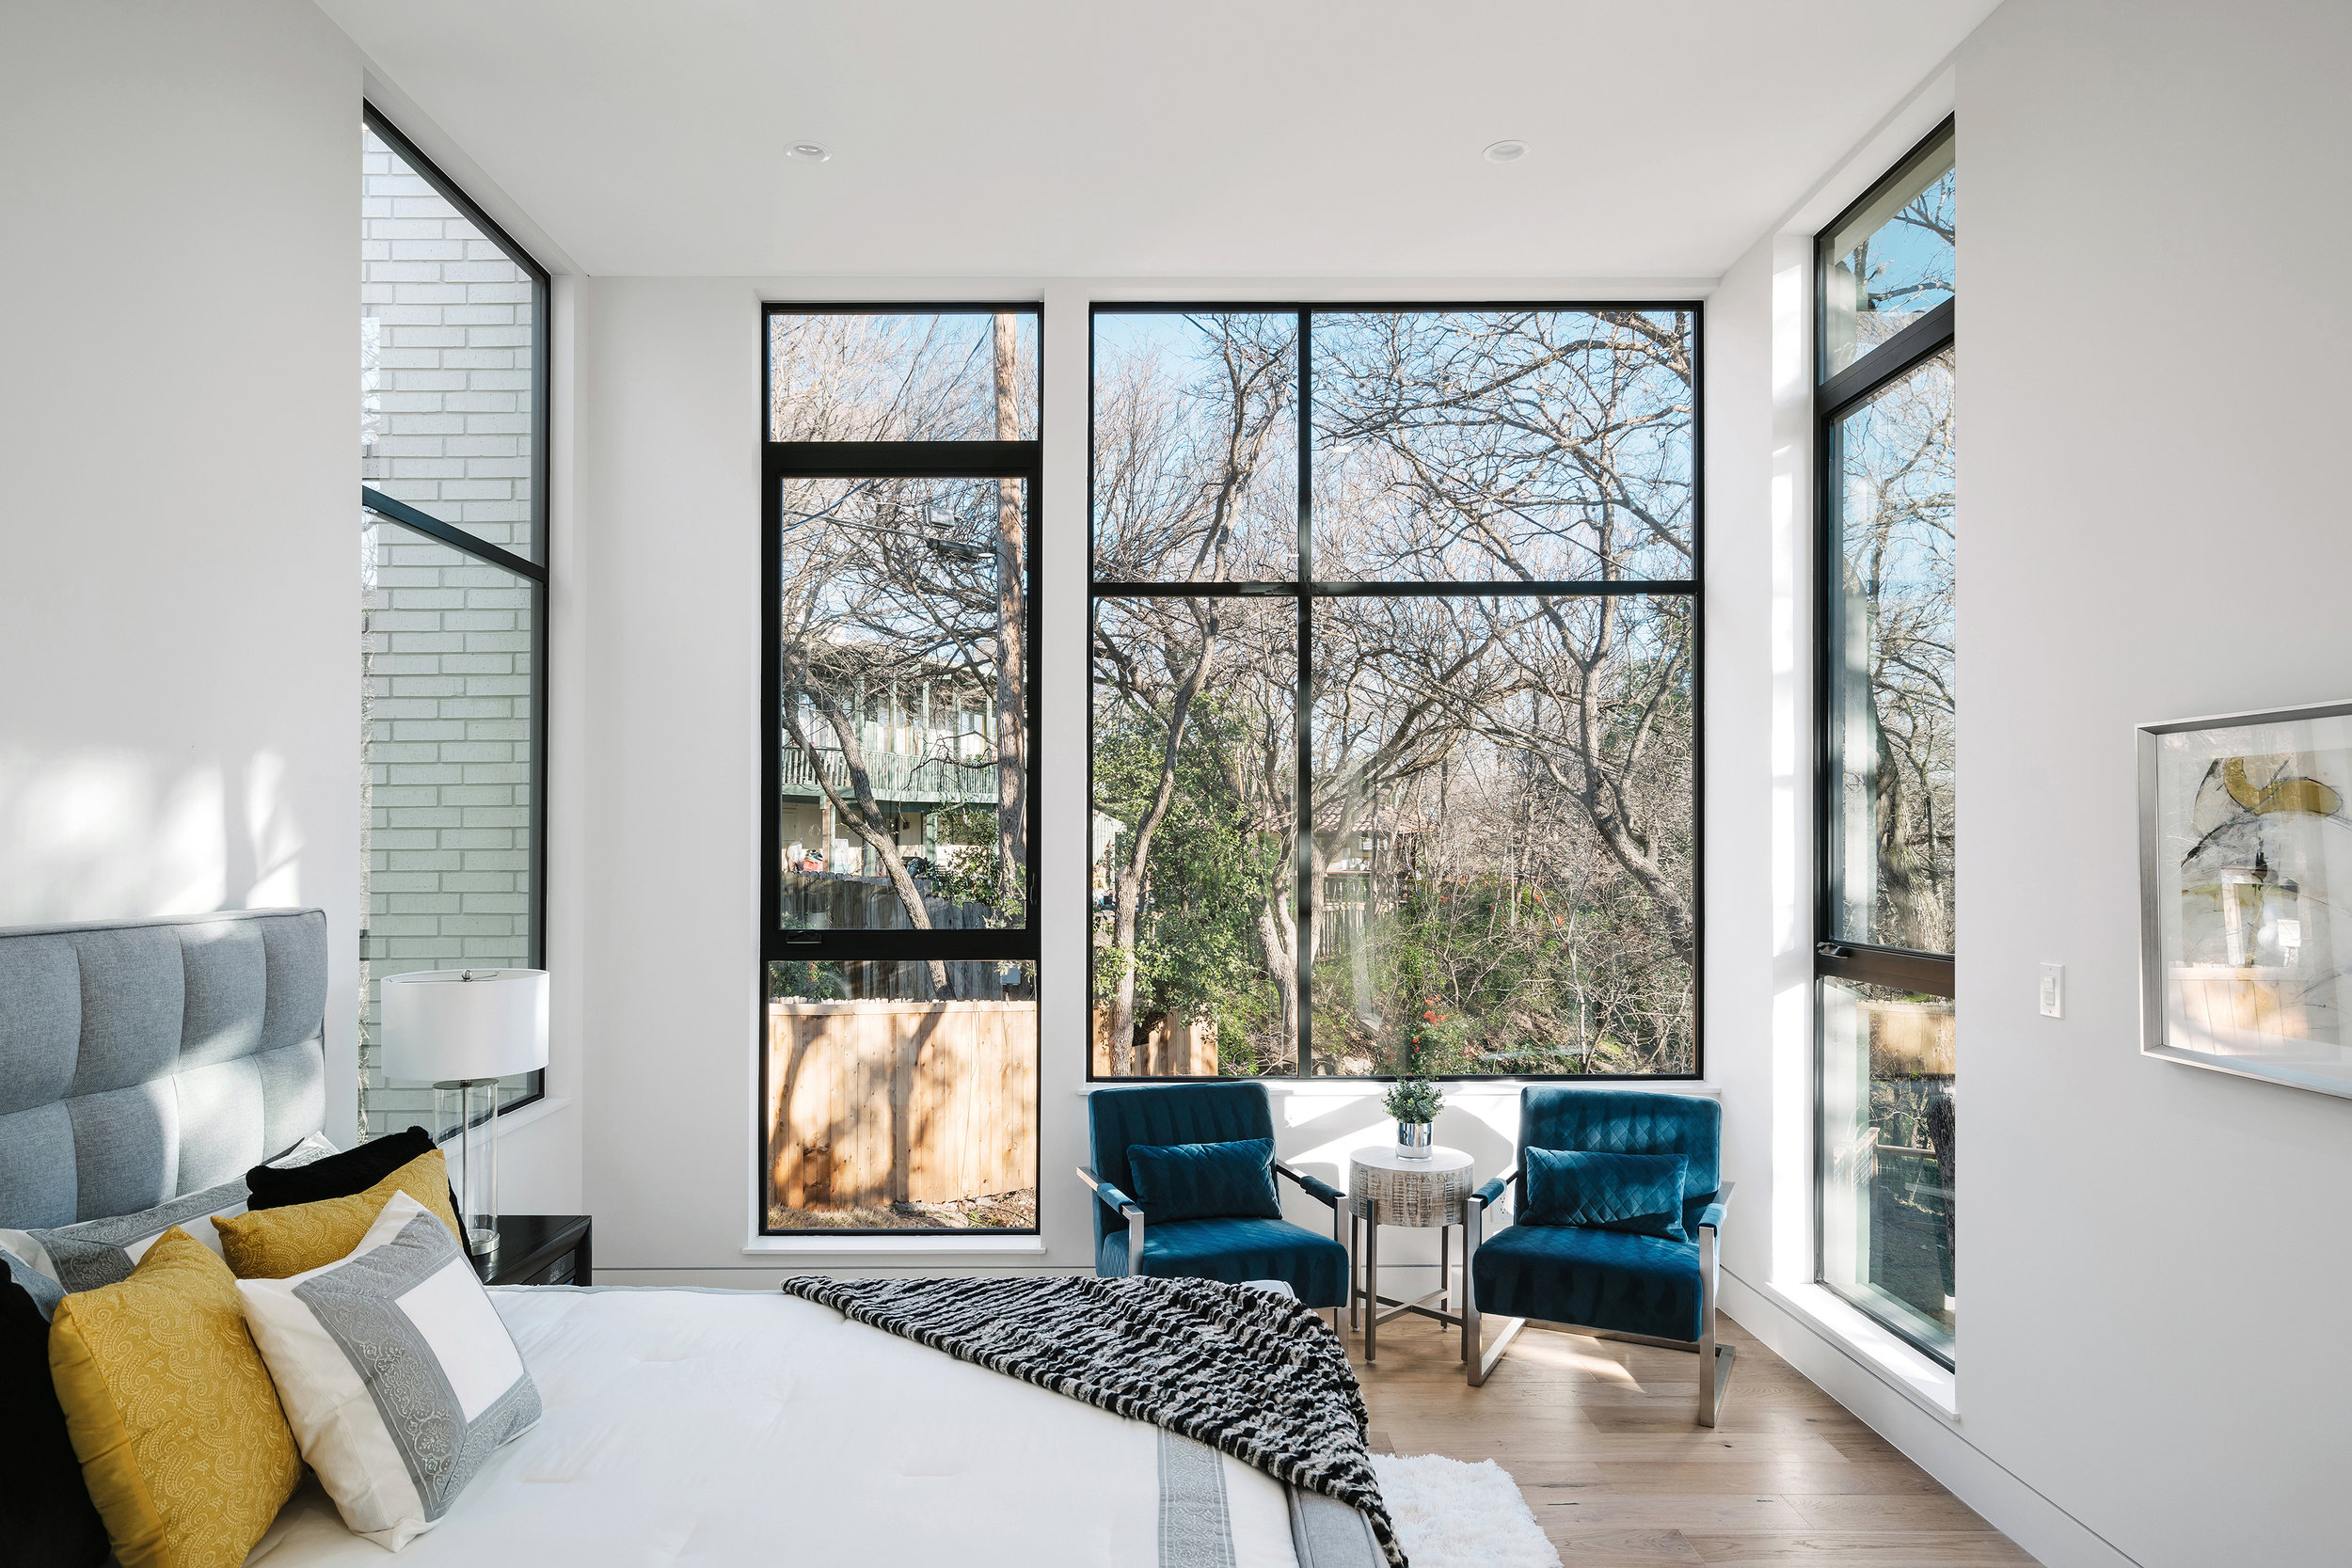 13 Allotted Space House by Matt Fajkus Architecture. Photo by Chase Daniel.jpg